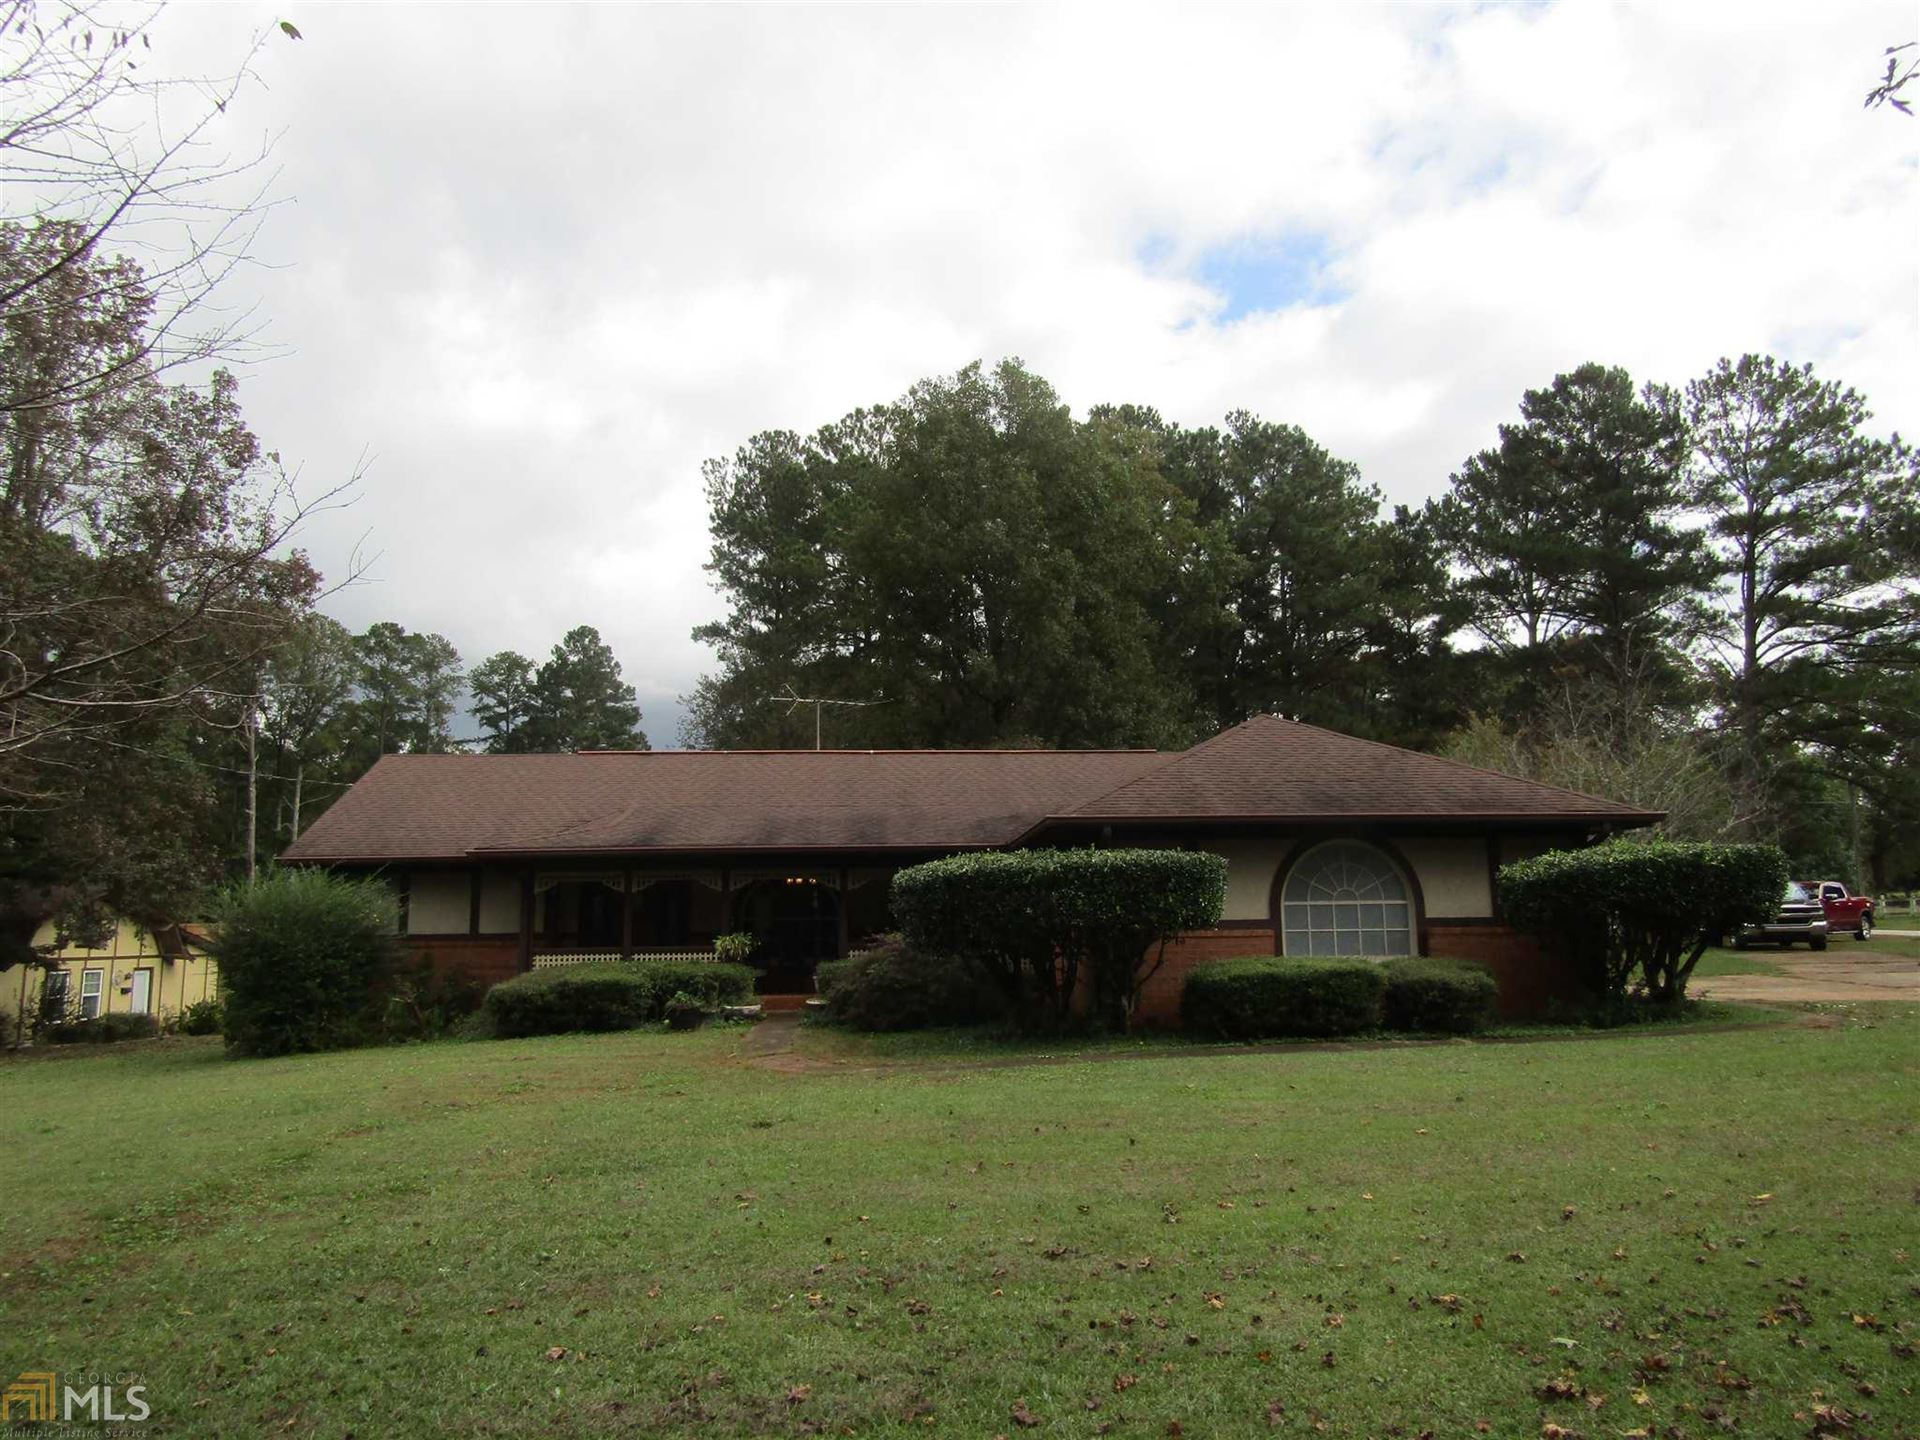 3050 Orchard Rd, Conyers, GA 30094 - MLS#: 8874508